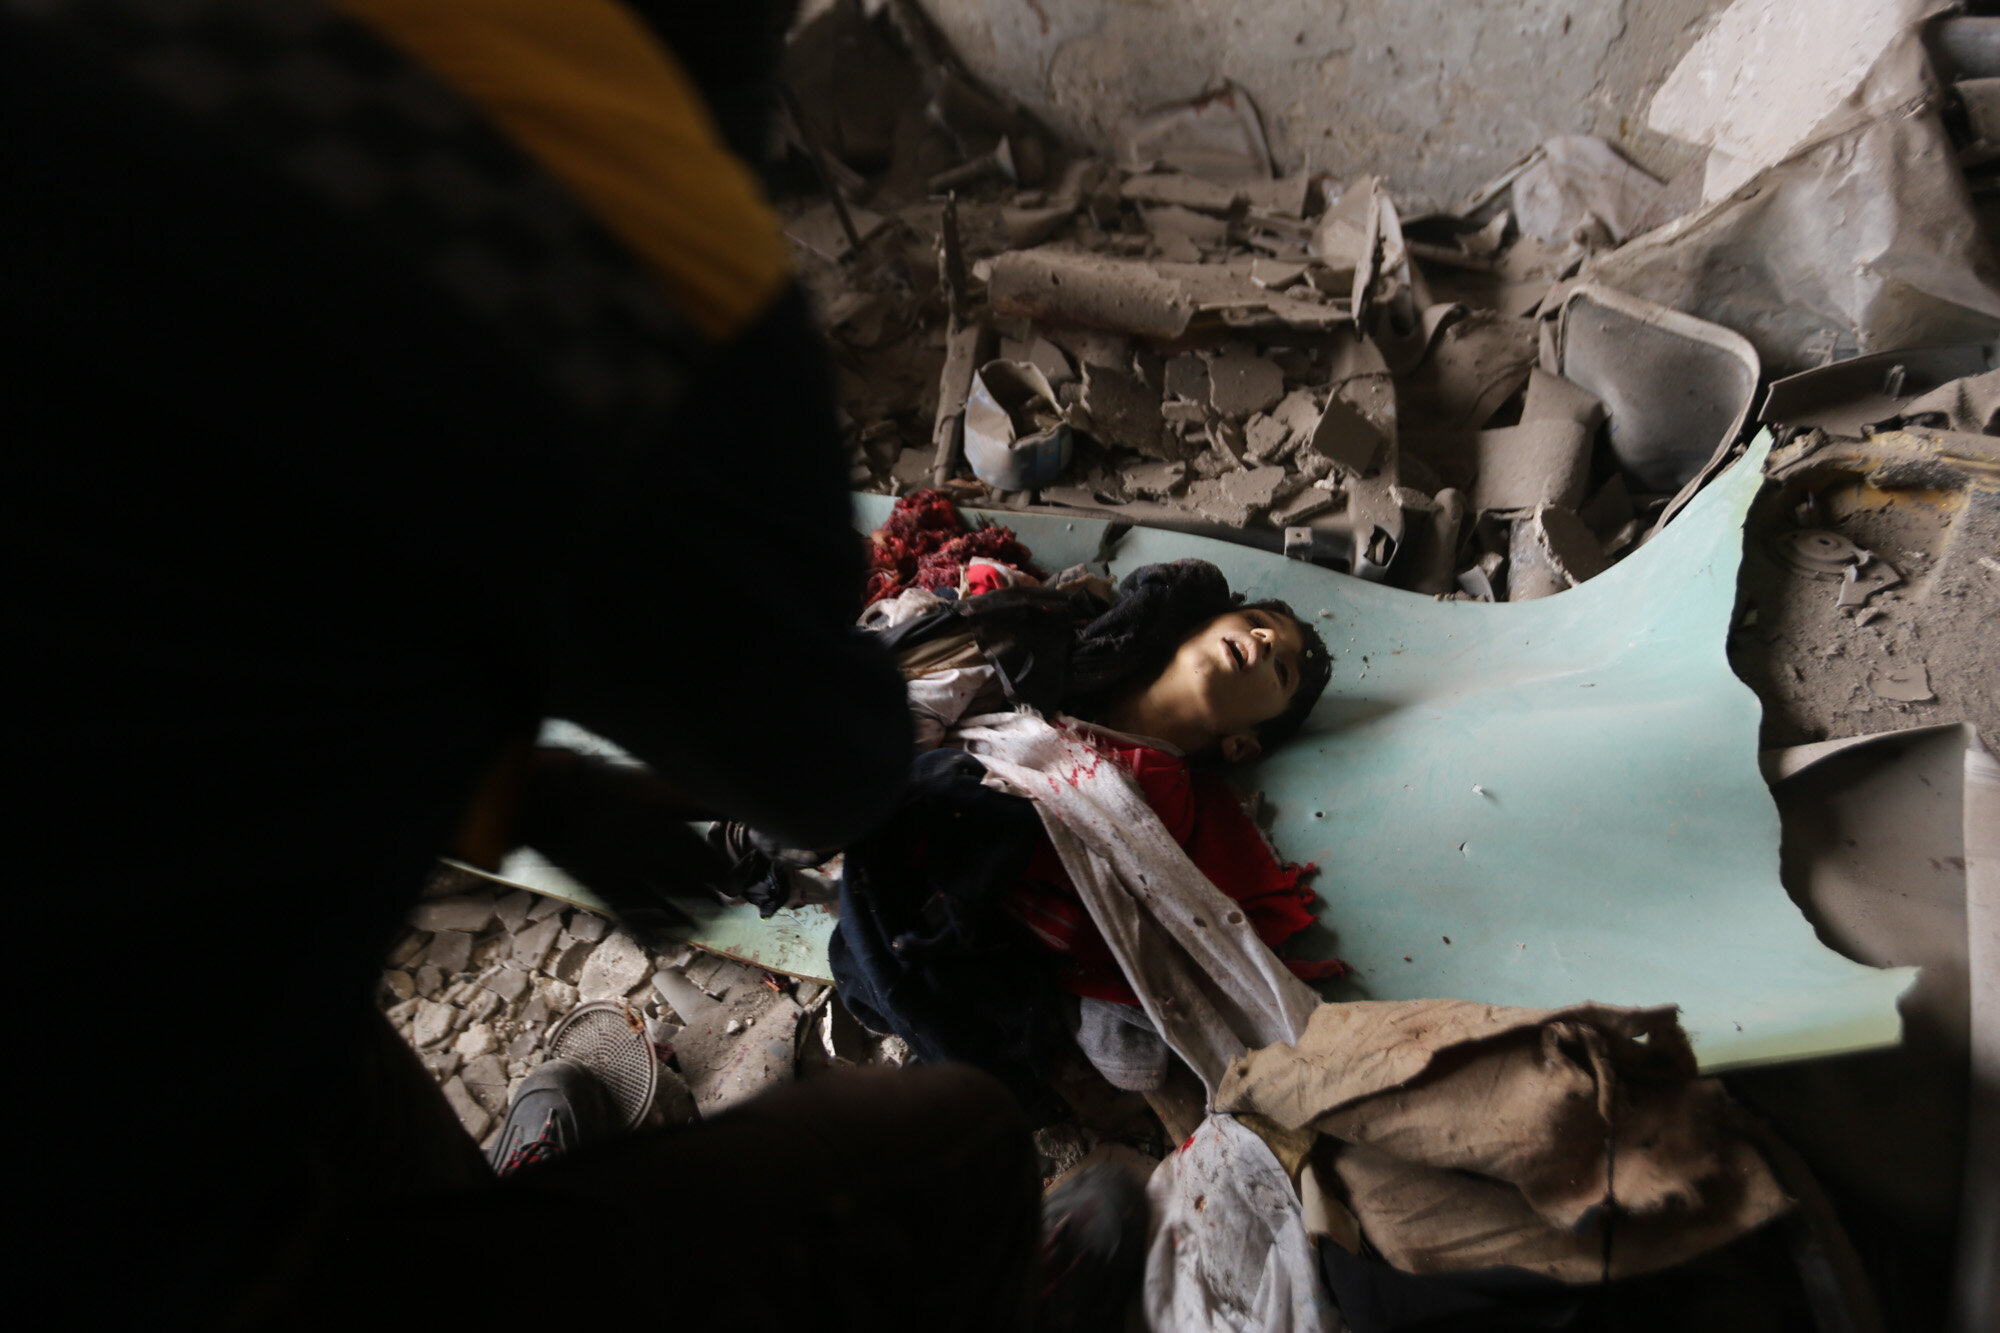 An emergency crew recovers the body of a boy killed in a government airstrike in the city of Idlib, Syria on Feb. 11, 2020. (AP Photo/Ghaith Alsayed)